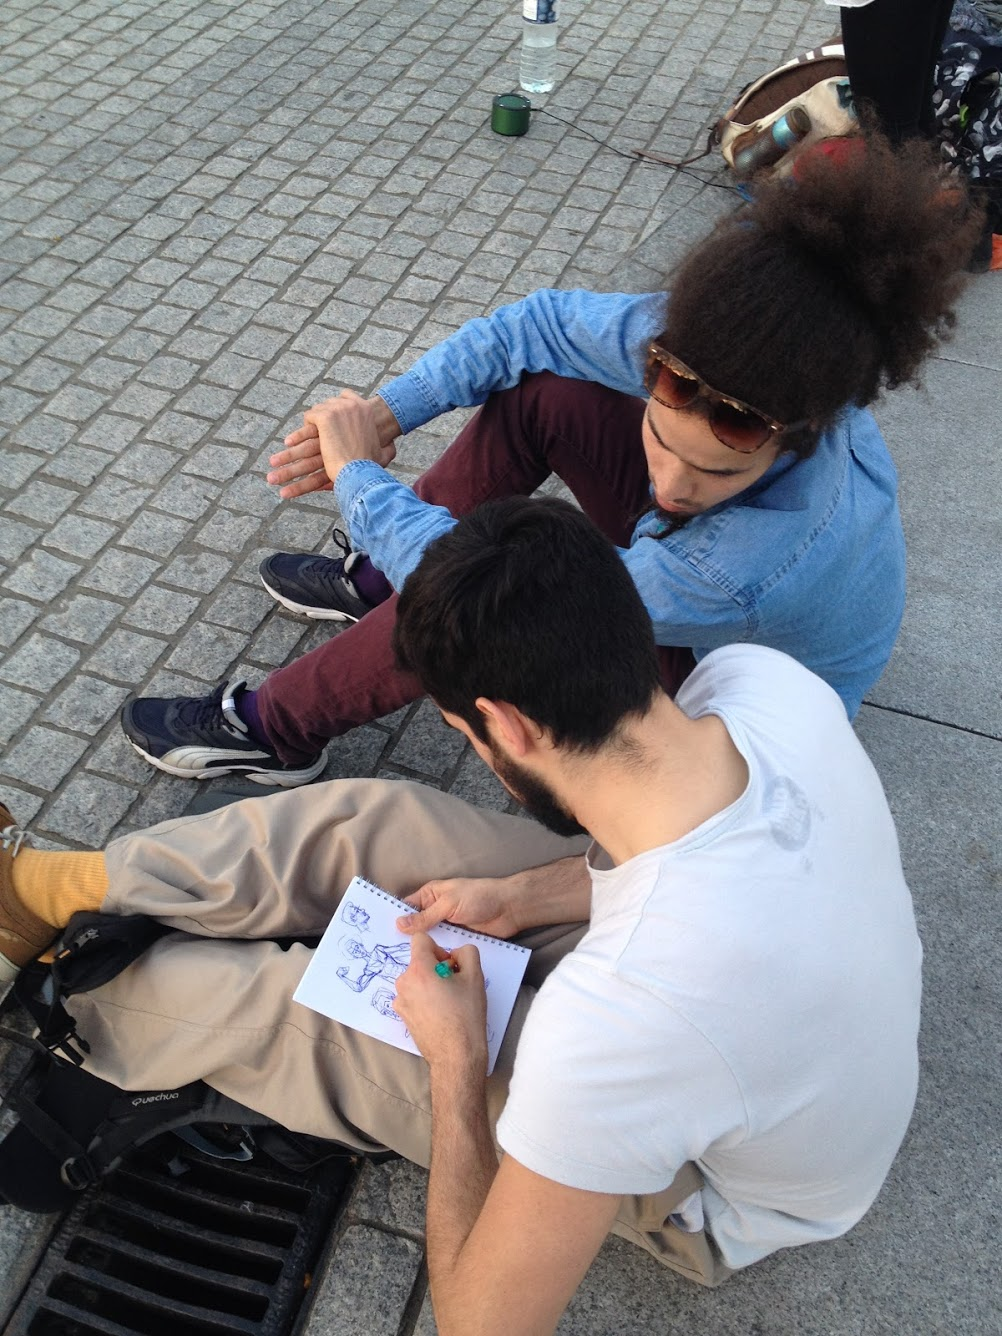 Drawing session as well